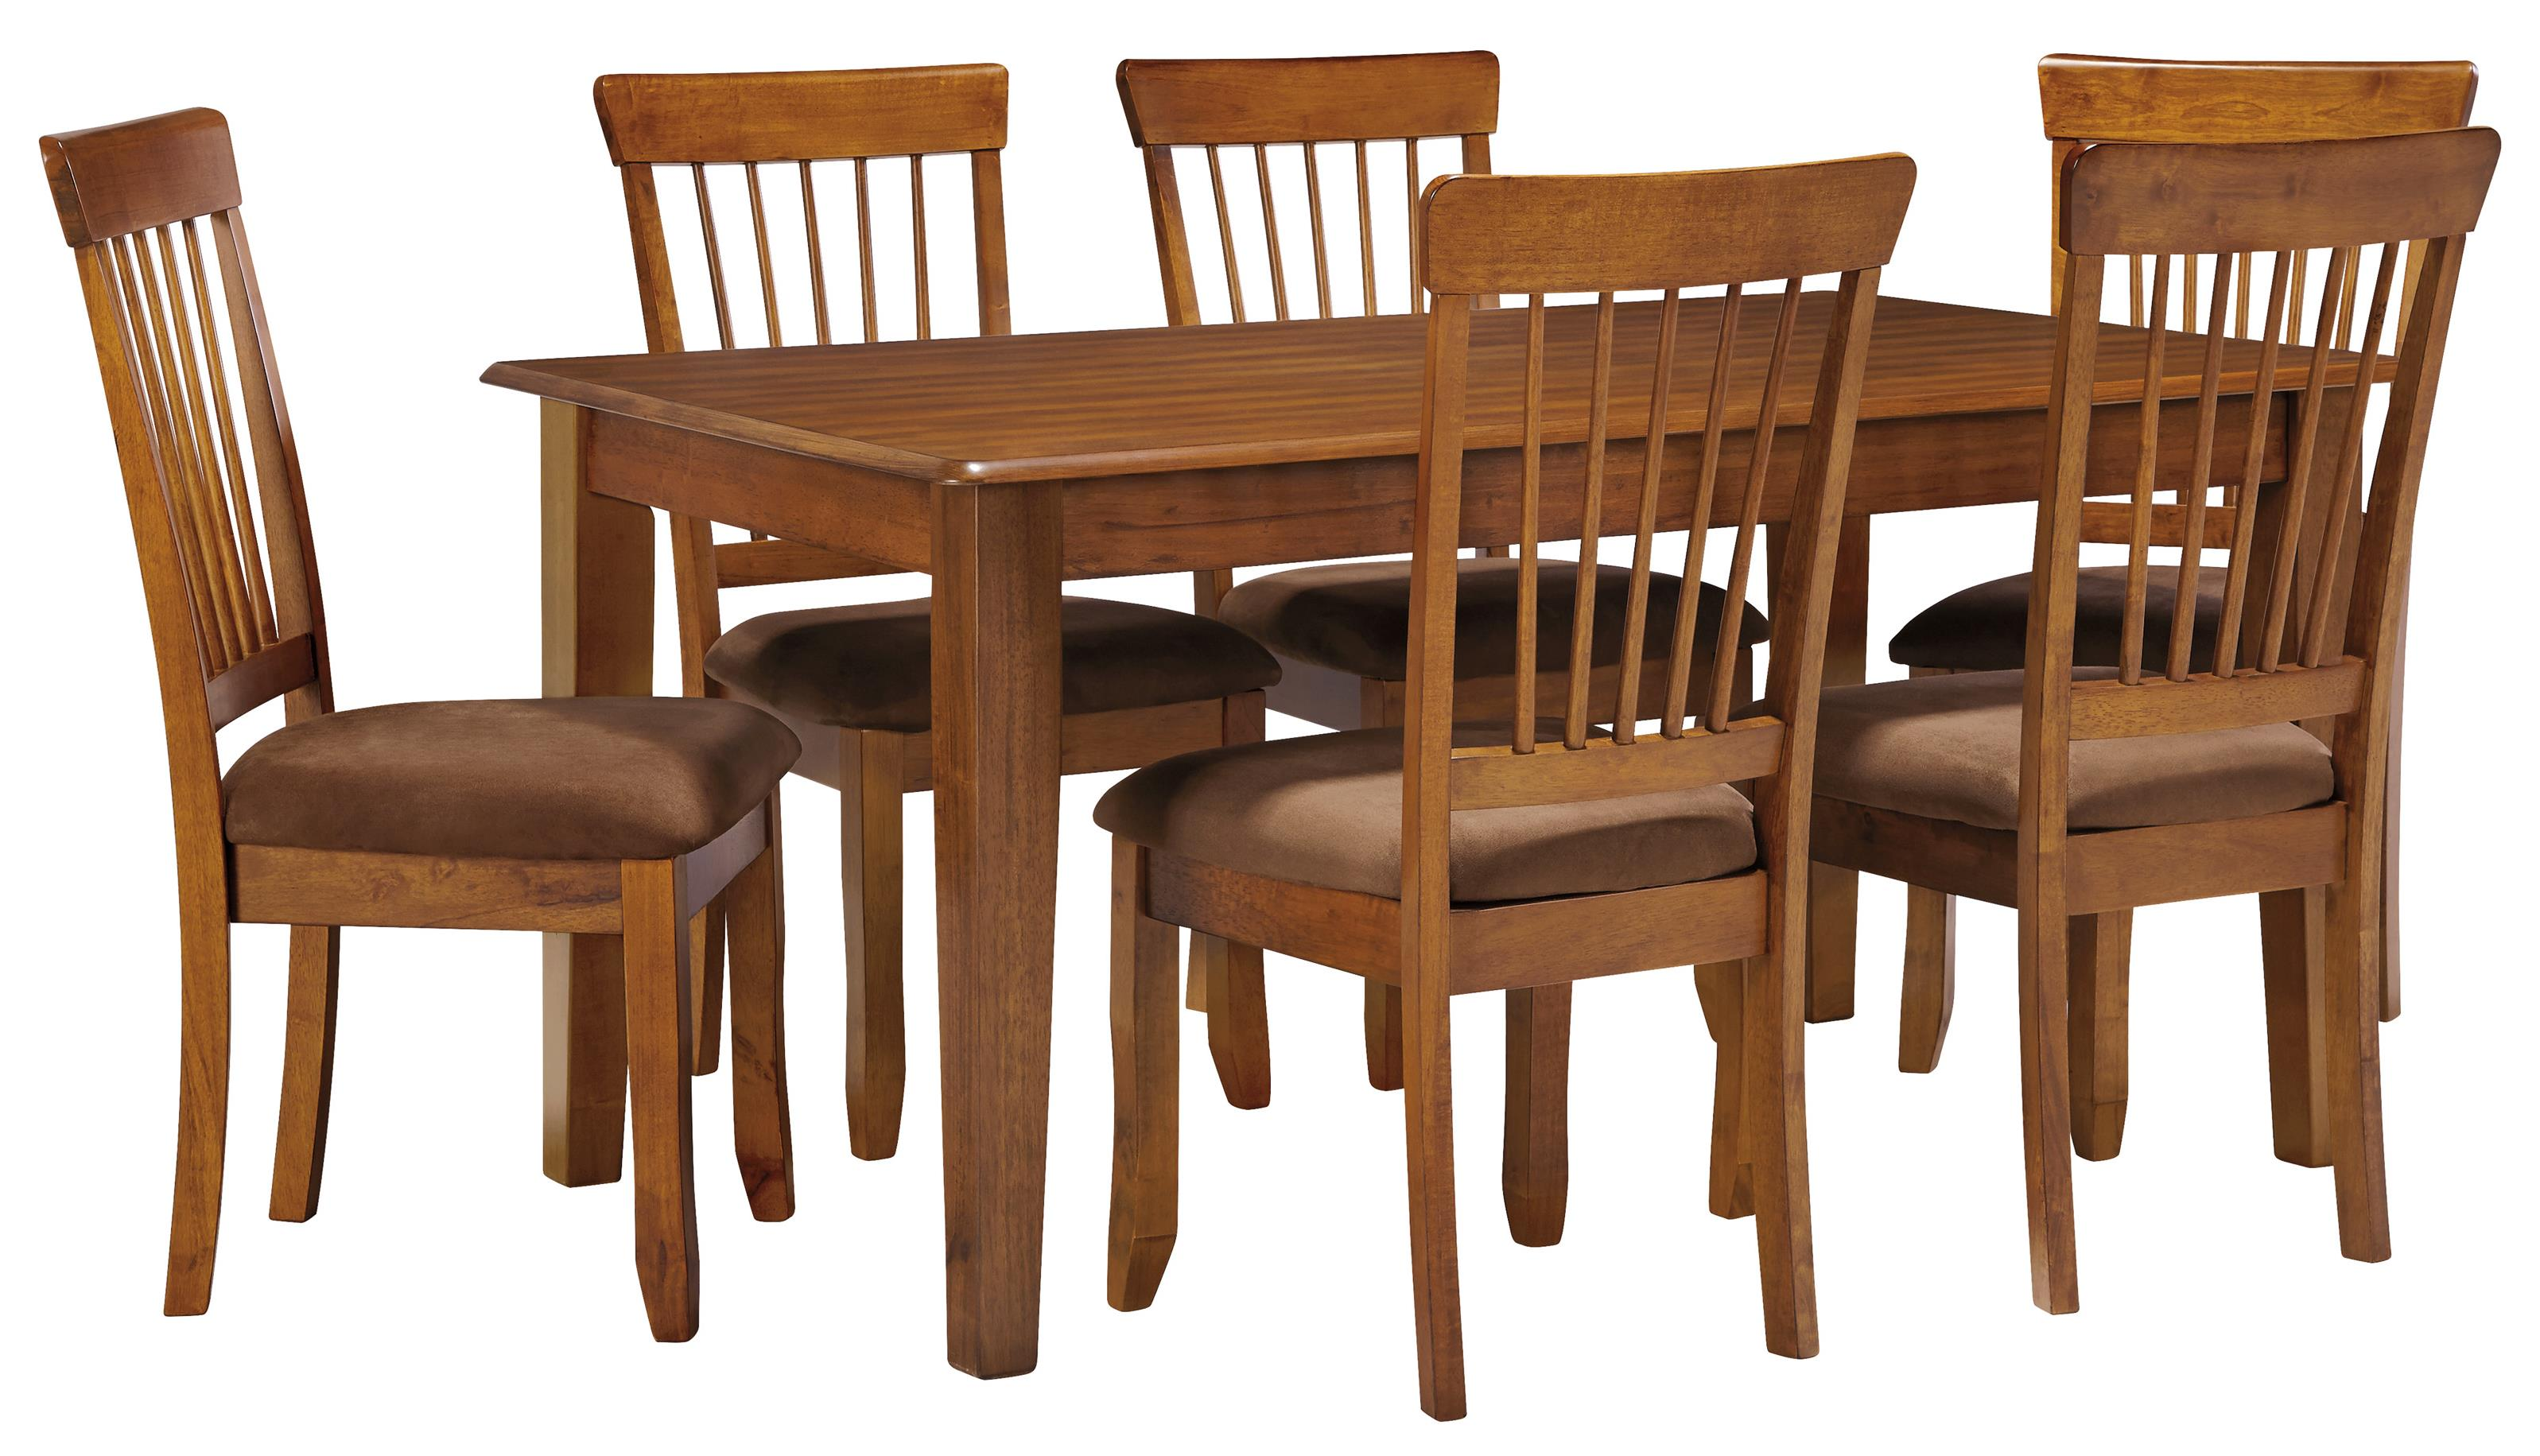 Ashley Furniture Table And Chairs Ashley Furniture Berringer 7 Piece 36x60 Table And Chair Set